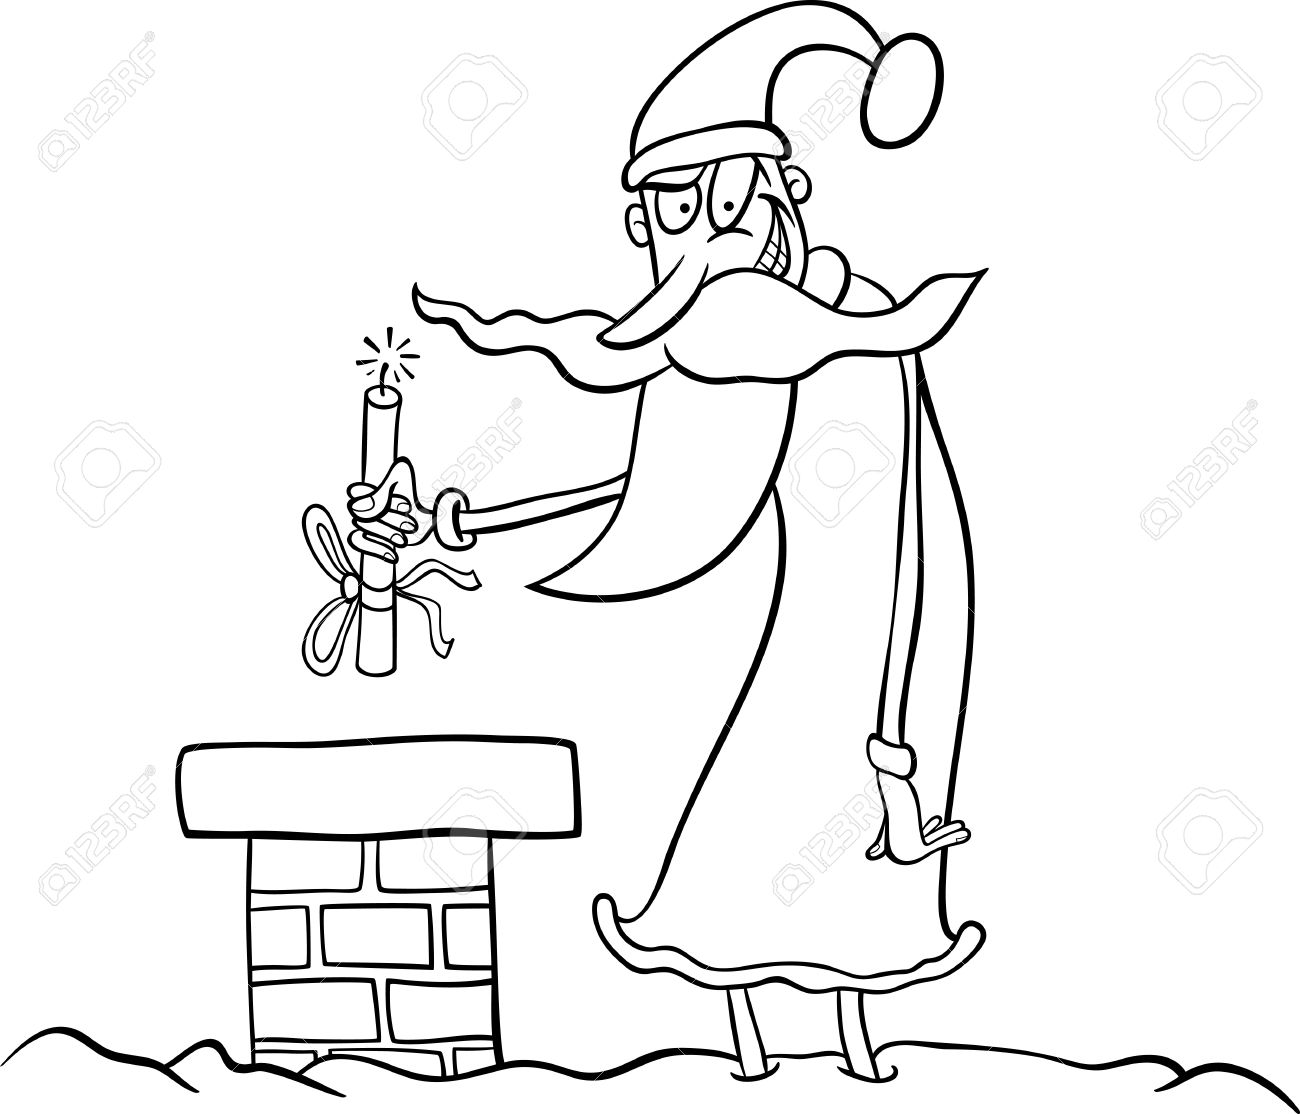 Cartoon Illustration of Funny Santa Claus or Papa Noel on the Roof with Stick of Dynamite as Christmas Present for Coloring Book Stock Vector - 16002036